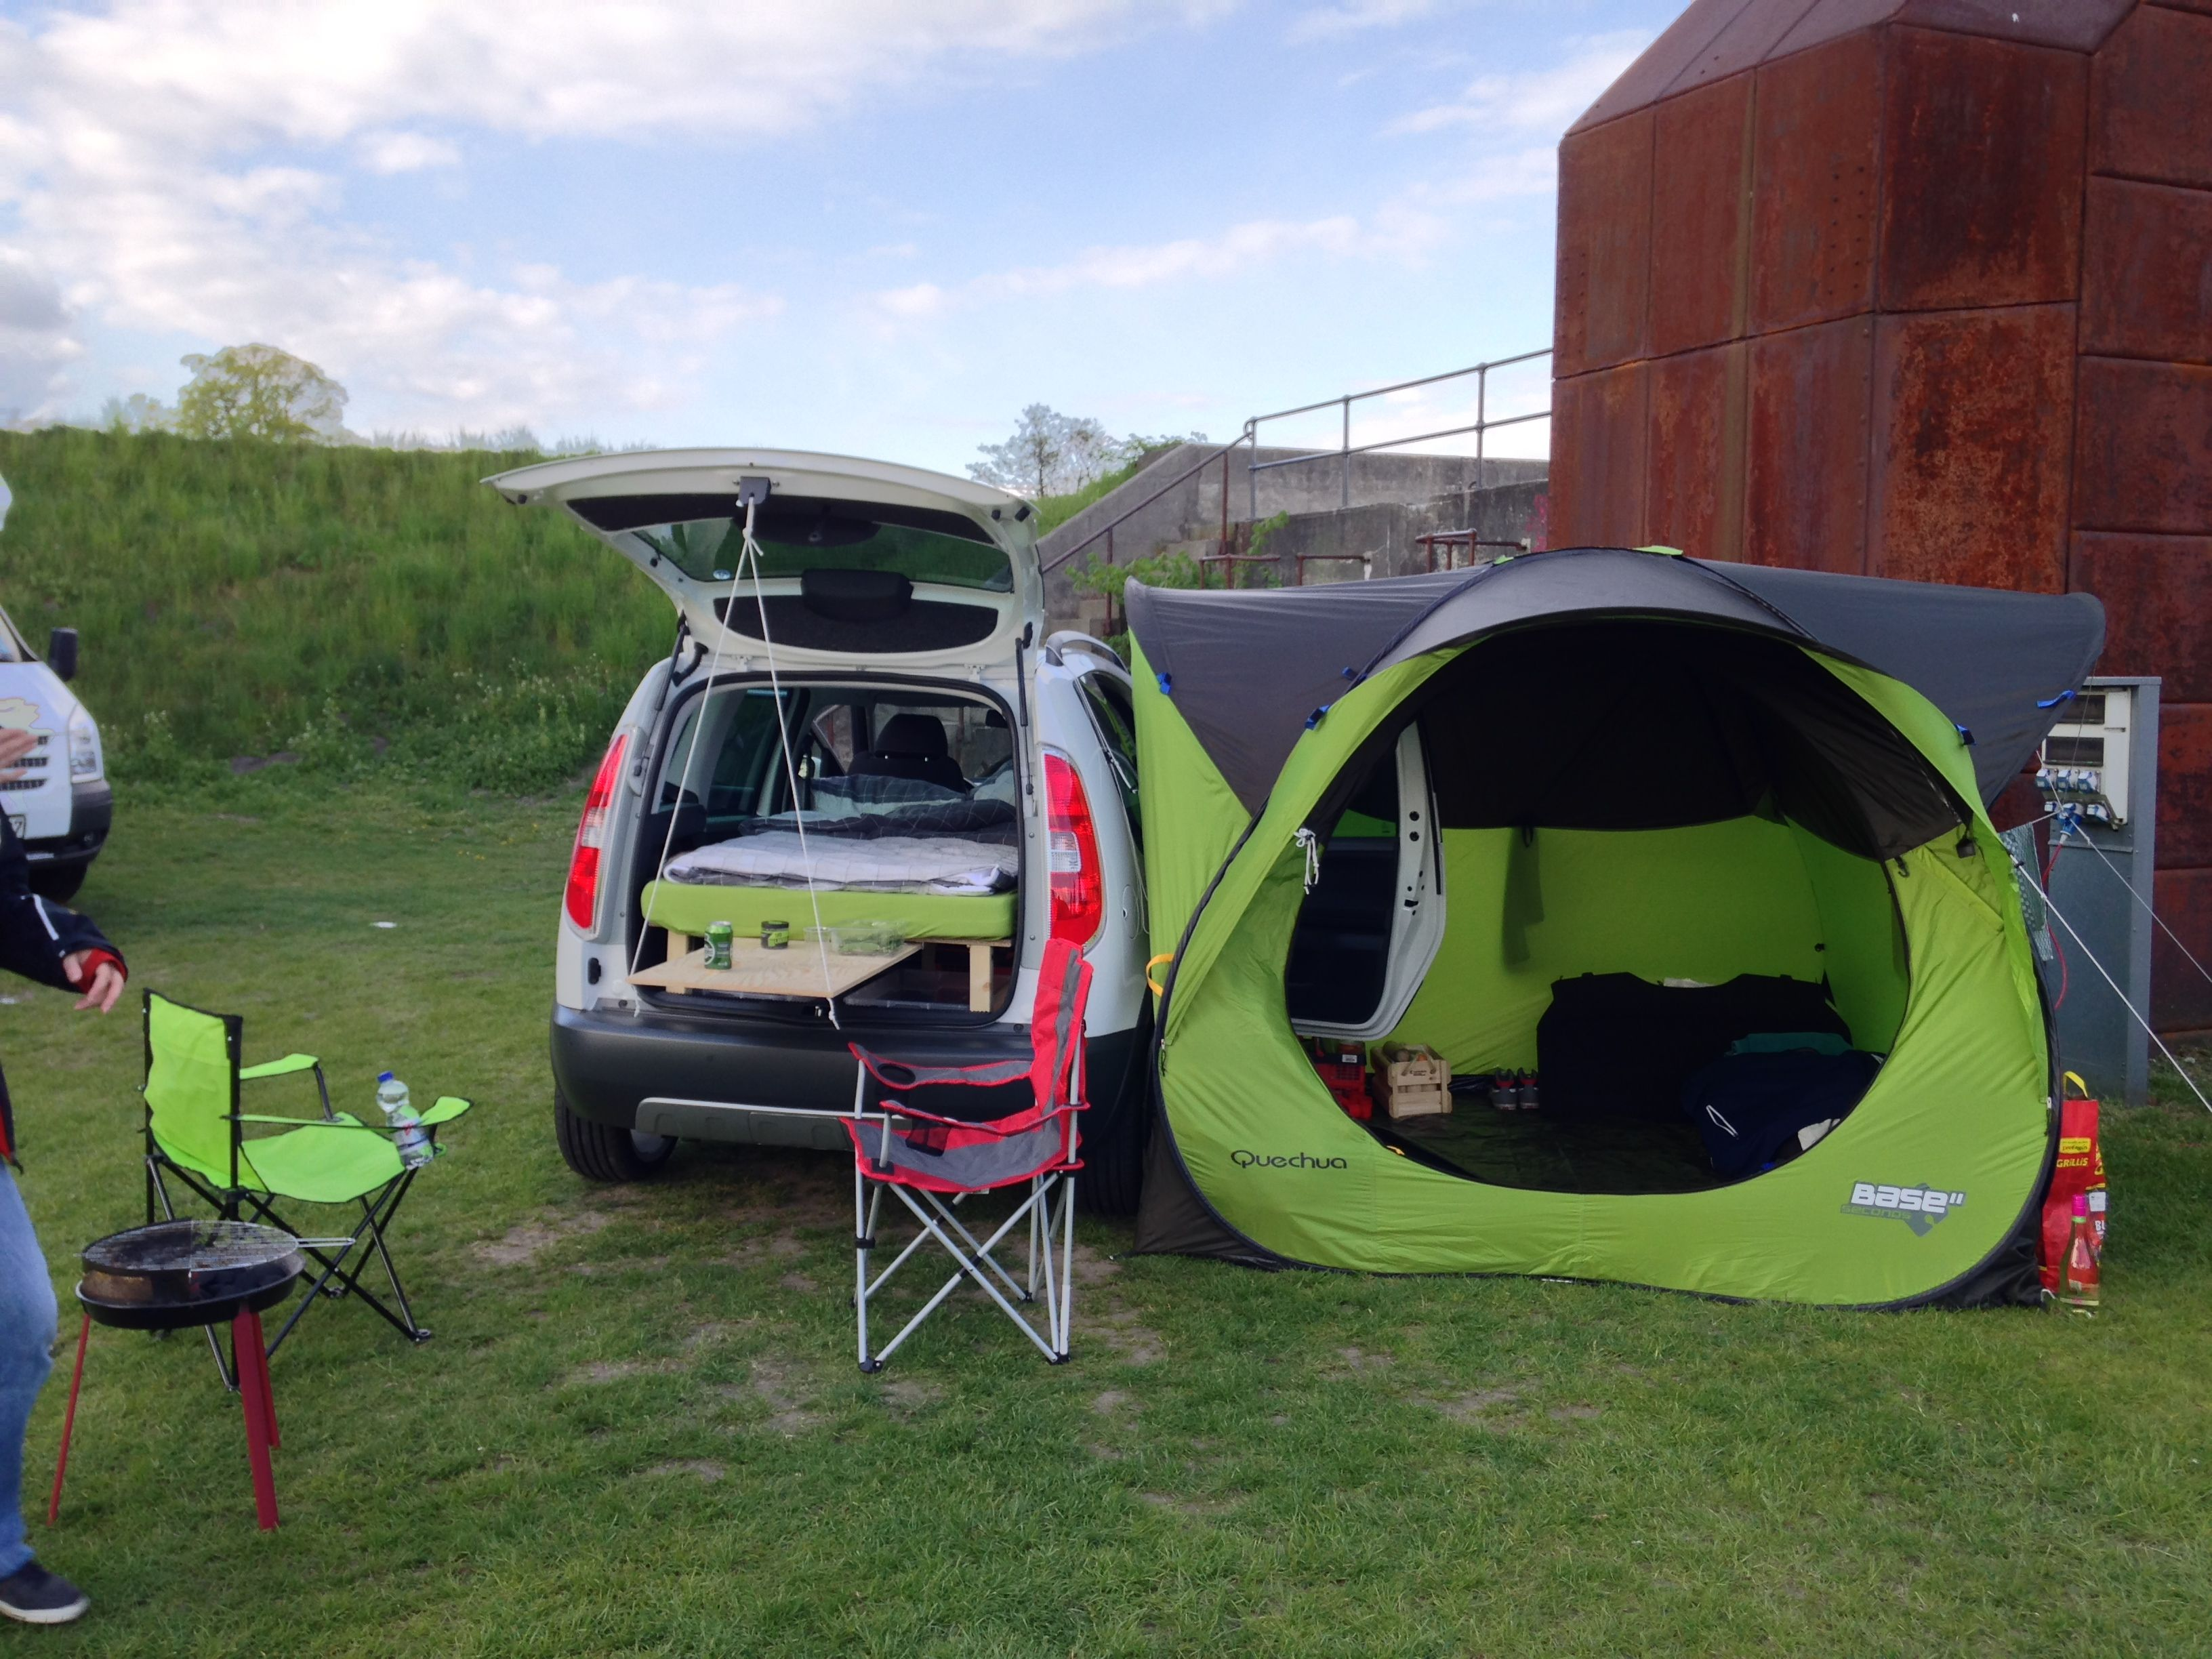 skoda roomster camper gemany with quechua base auto camping suv camping und auto zelt. Black Bedroom Furniture Sets. Home Design Ideas